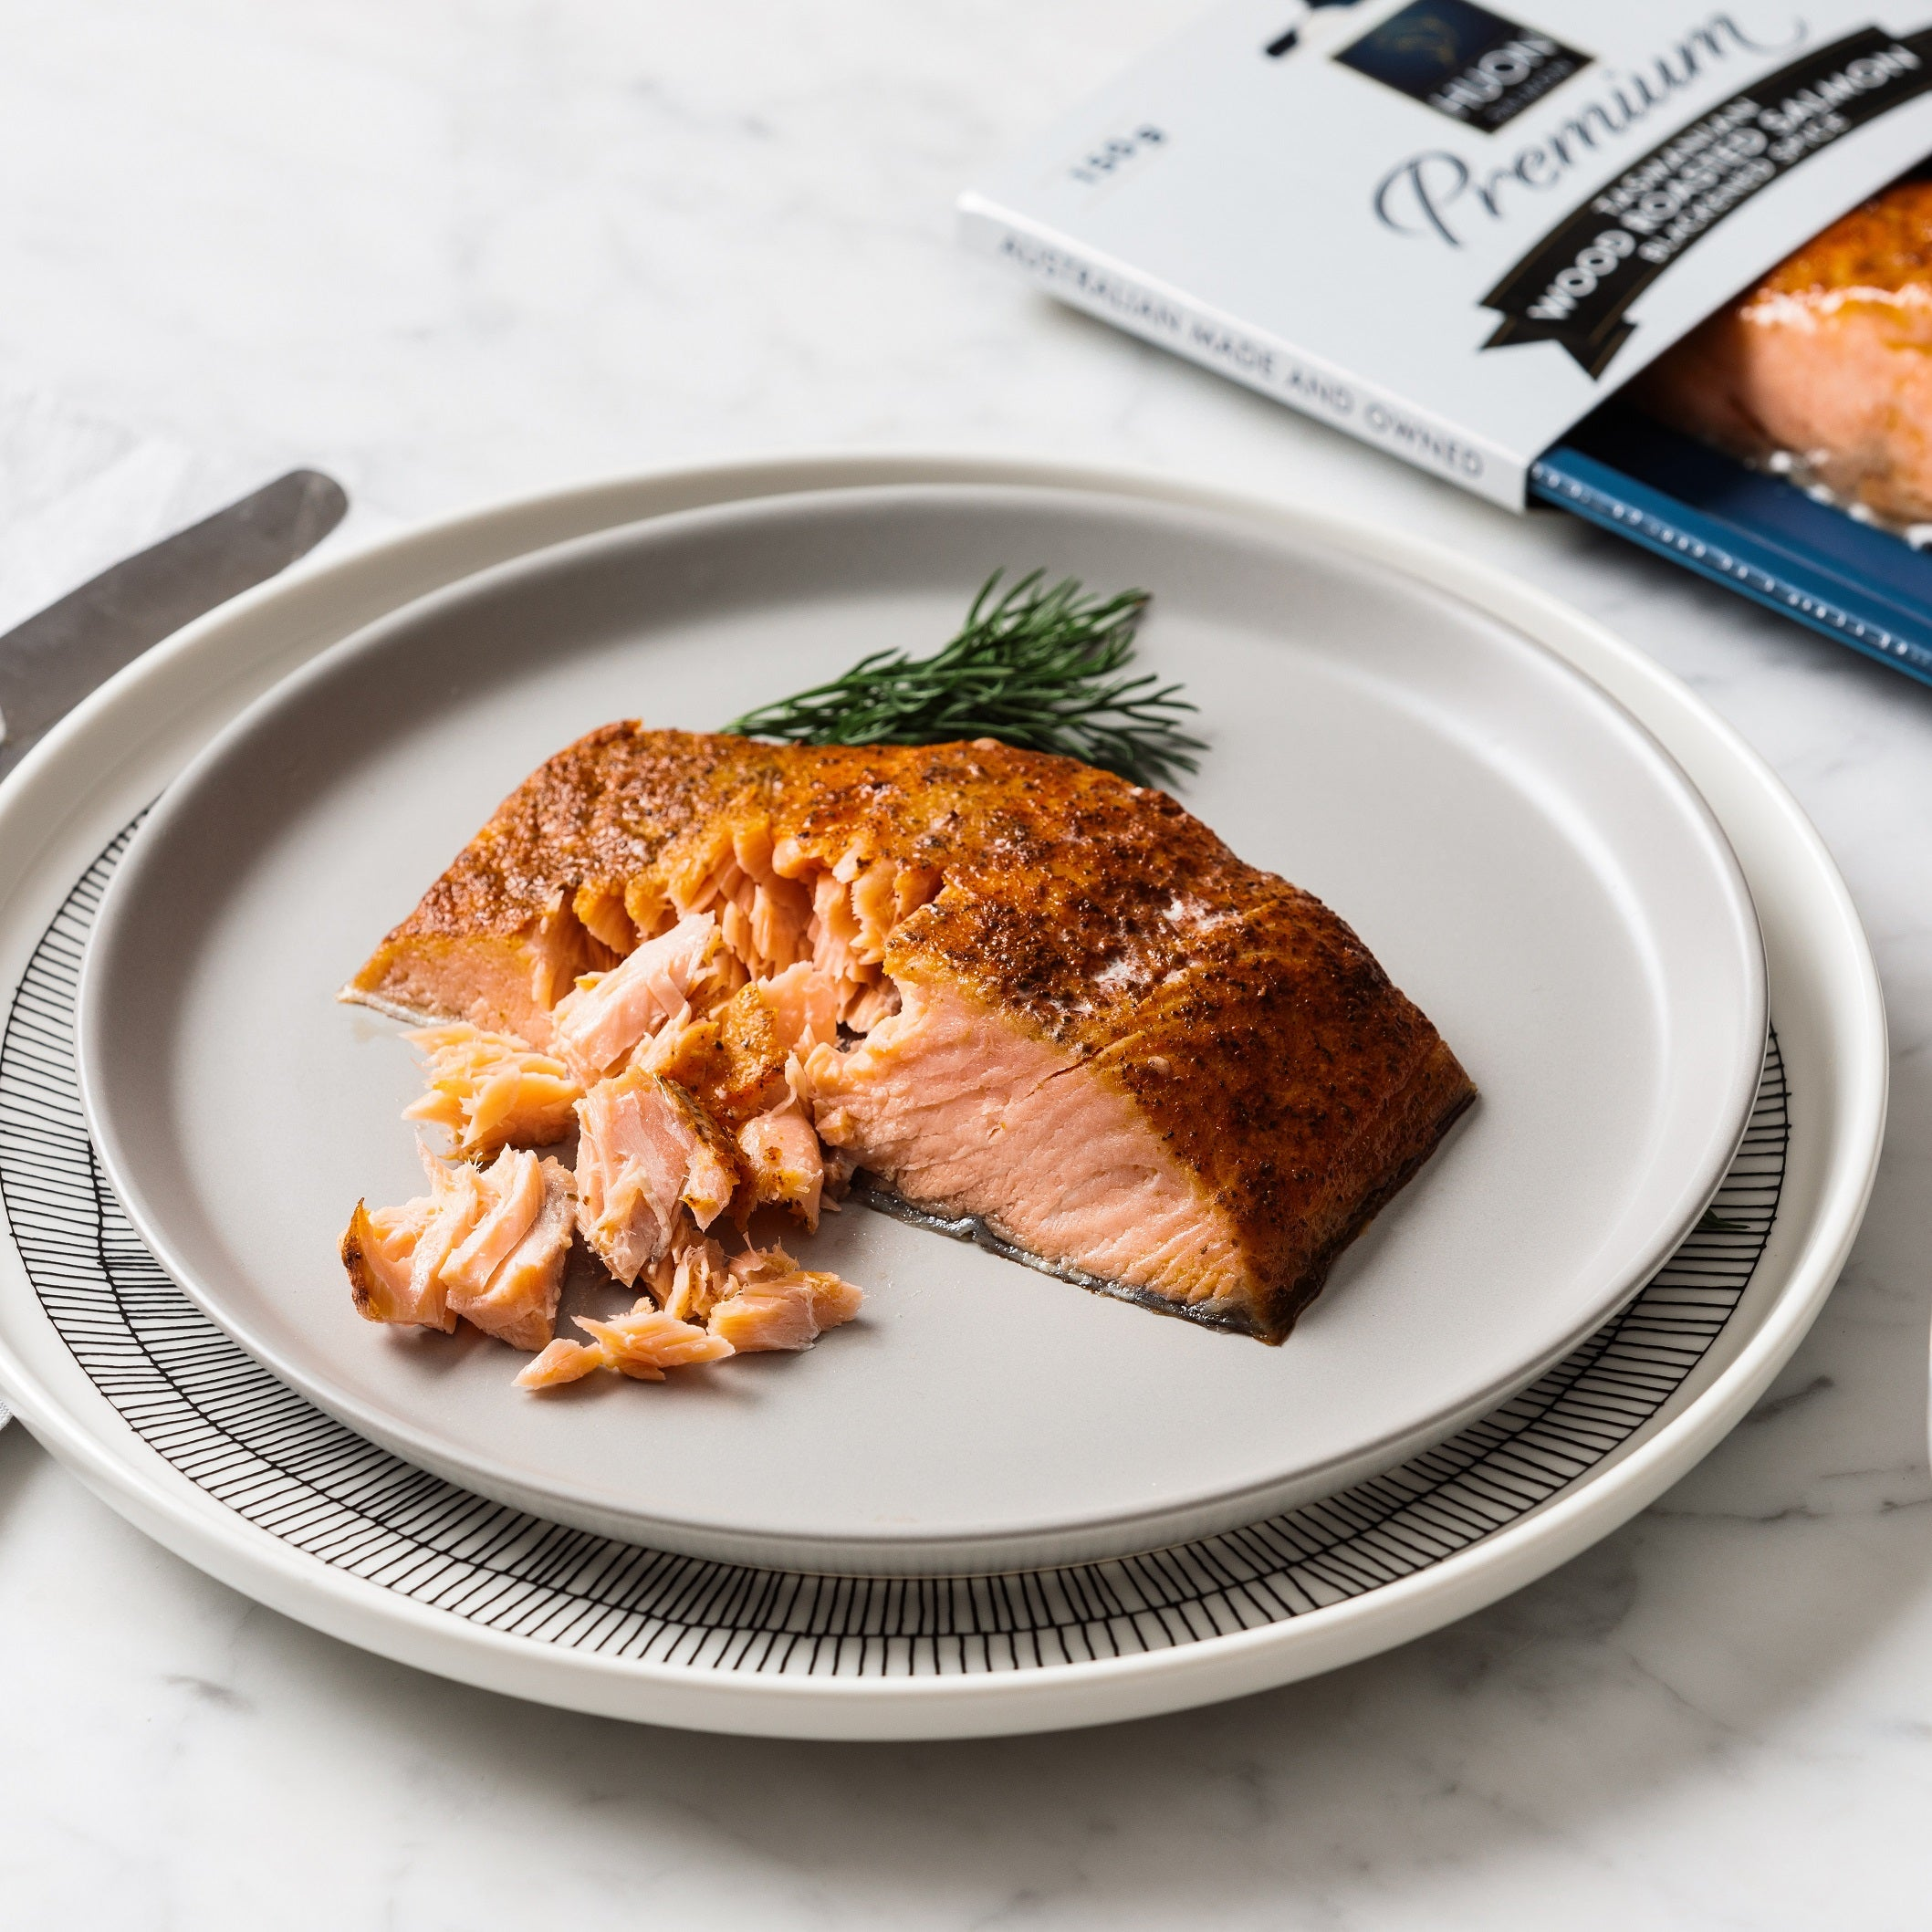 Premium Blackened Spice Wood Roasted Salmon